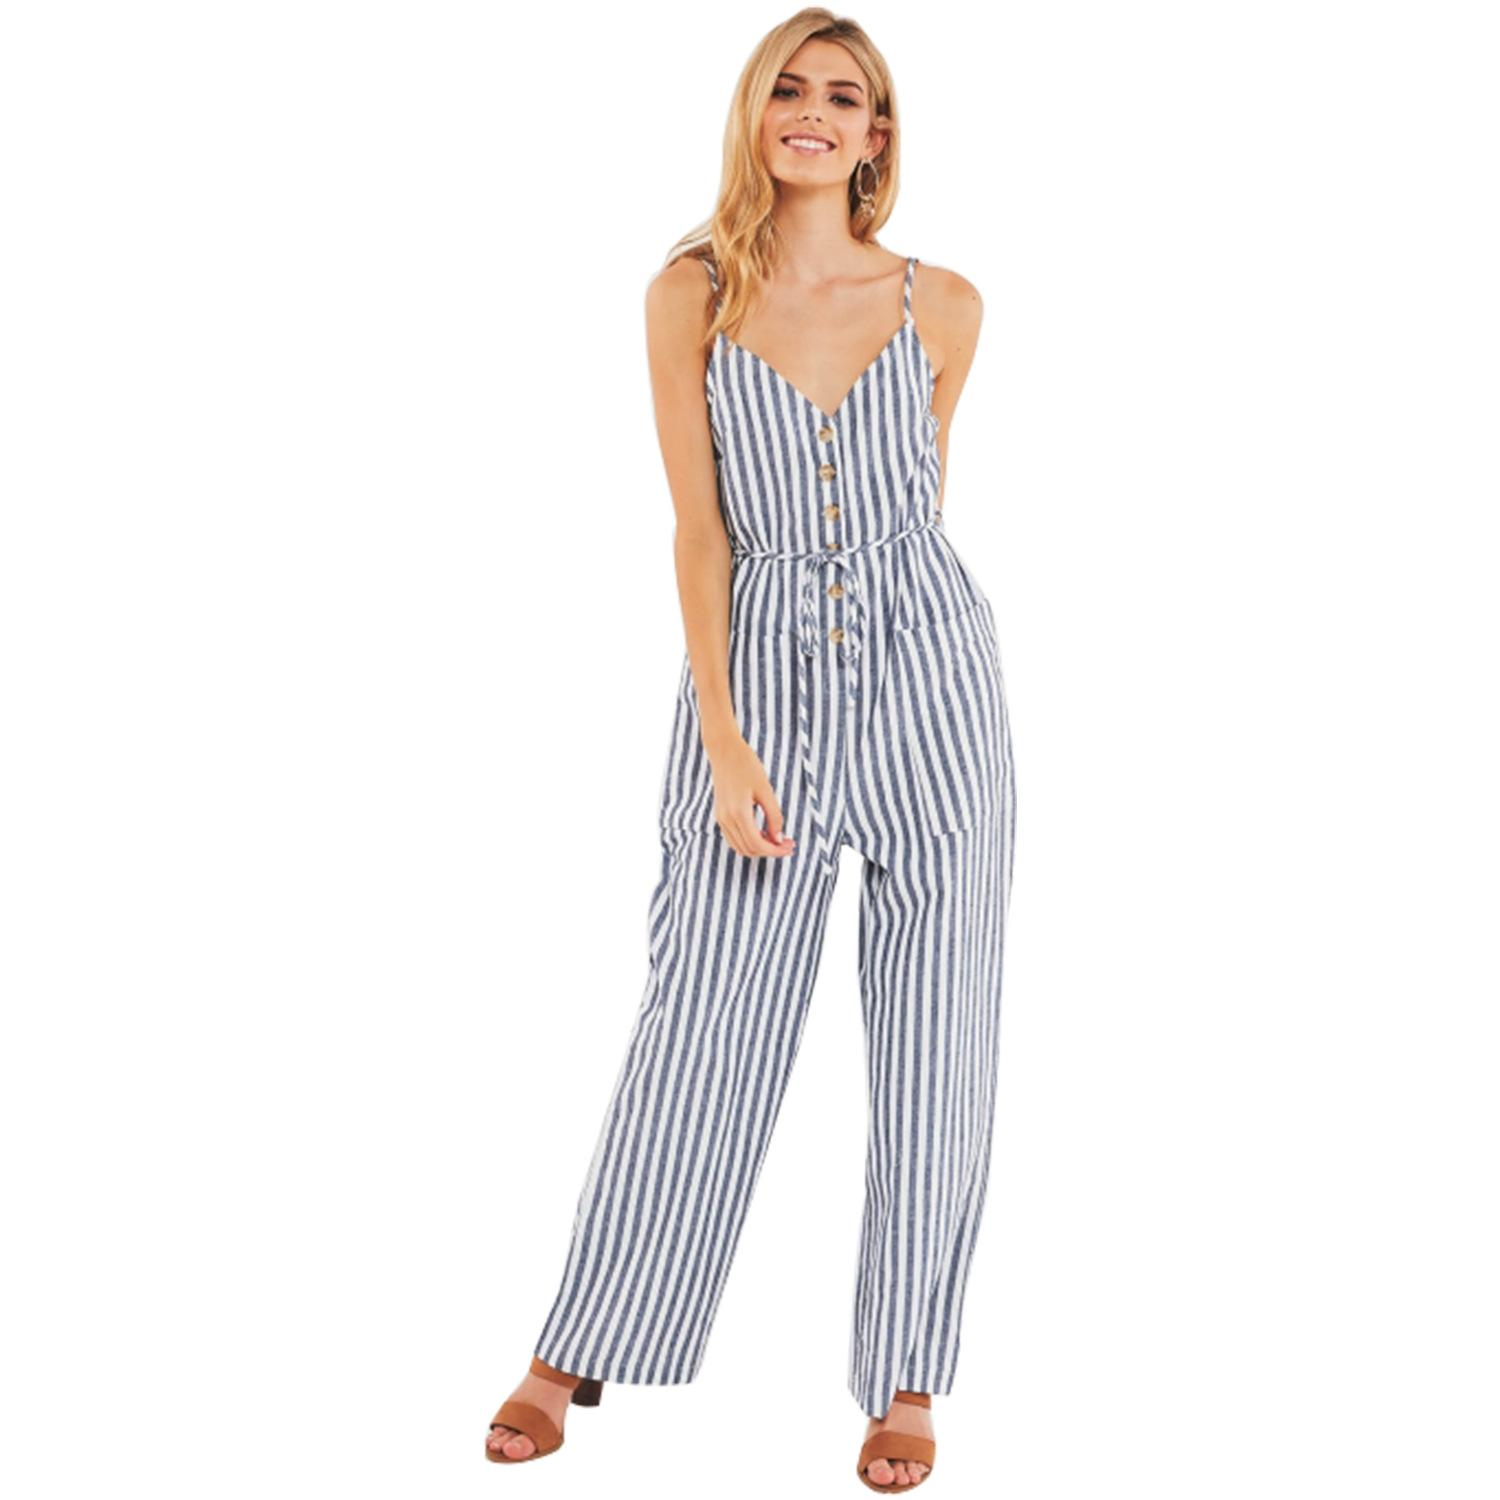 Looks - Striped women trousers pantsuits for summer video